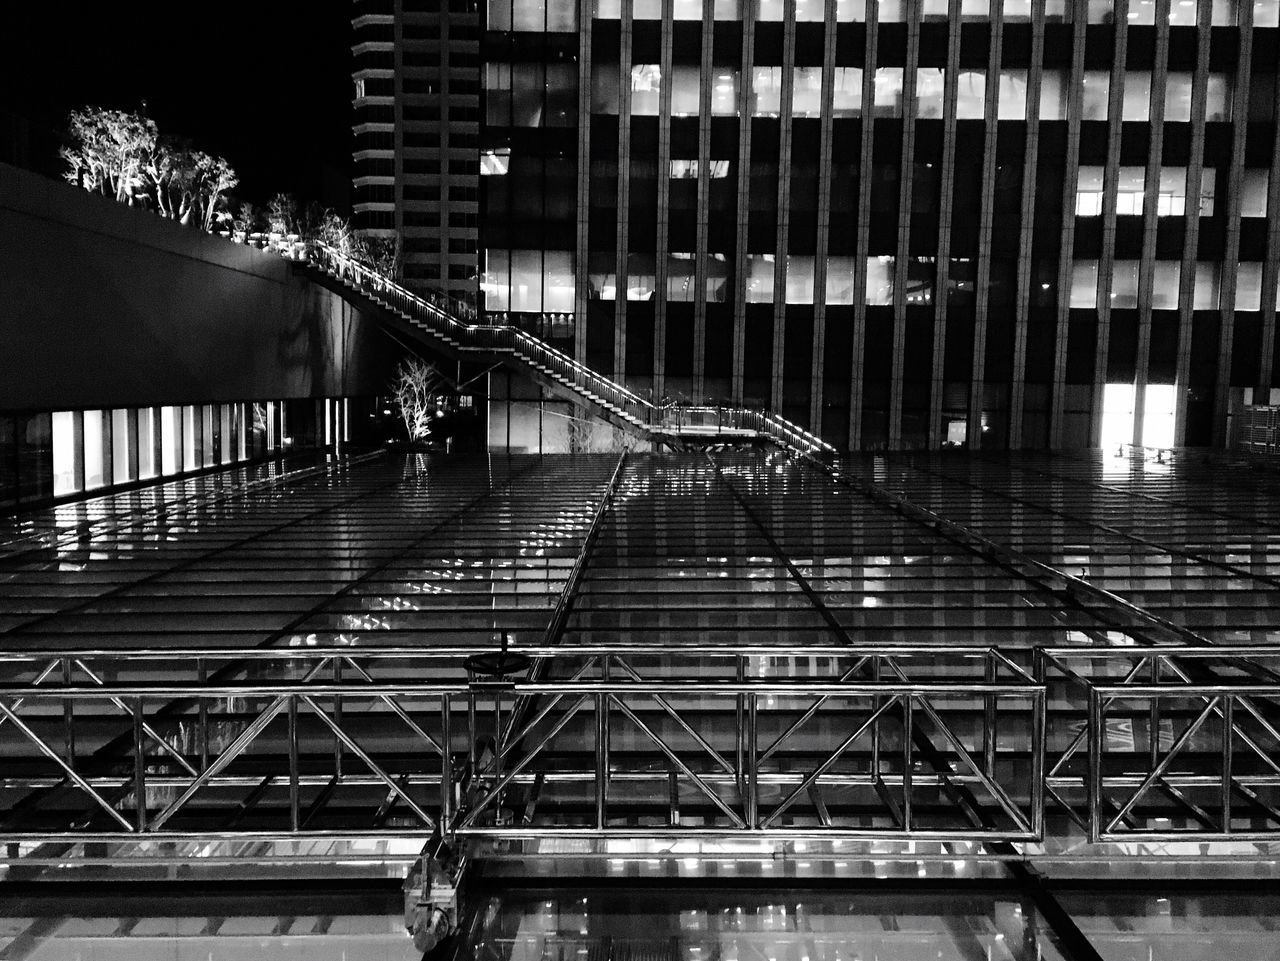 architecture, built structure, night, railing, illuminated, connection, bridge - man made structure, transportation, building exterior, no people, outdoors, modern, city